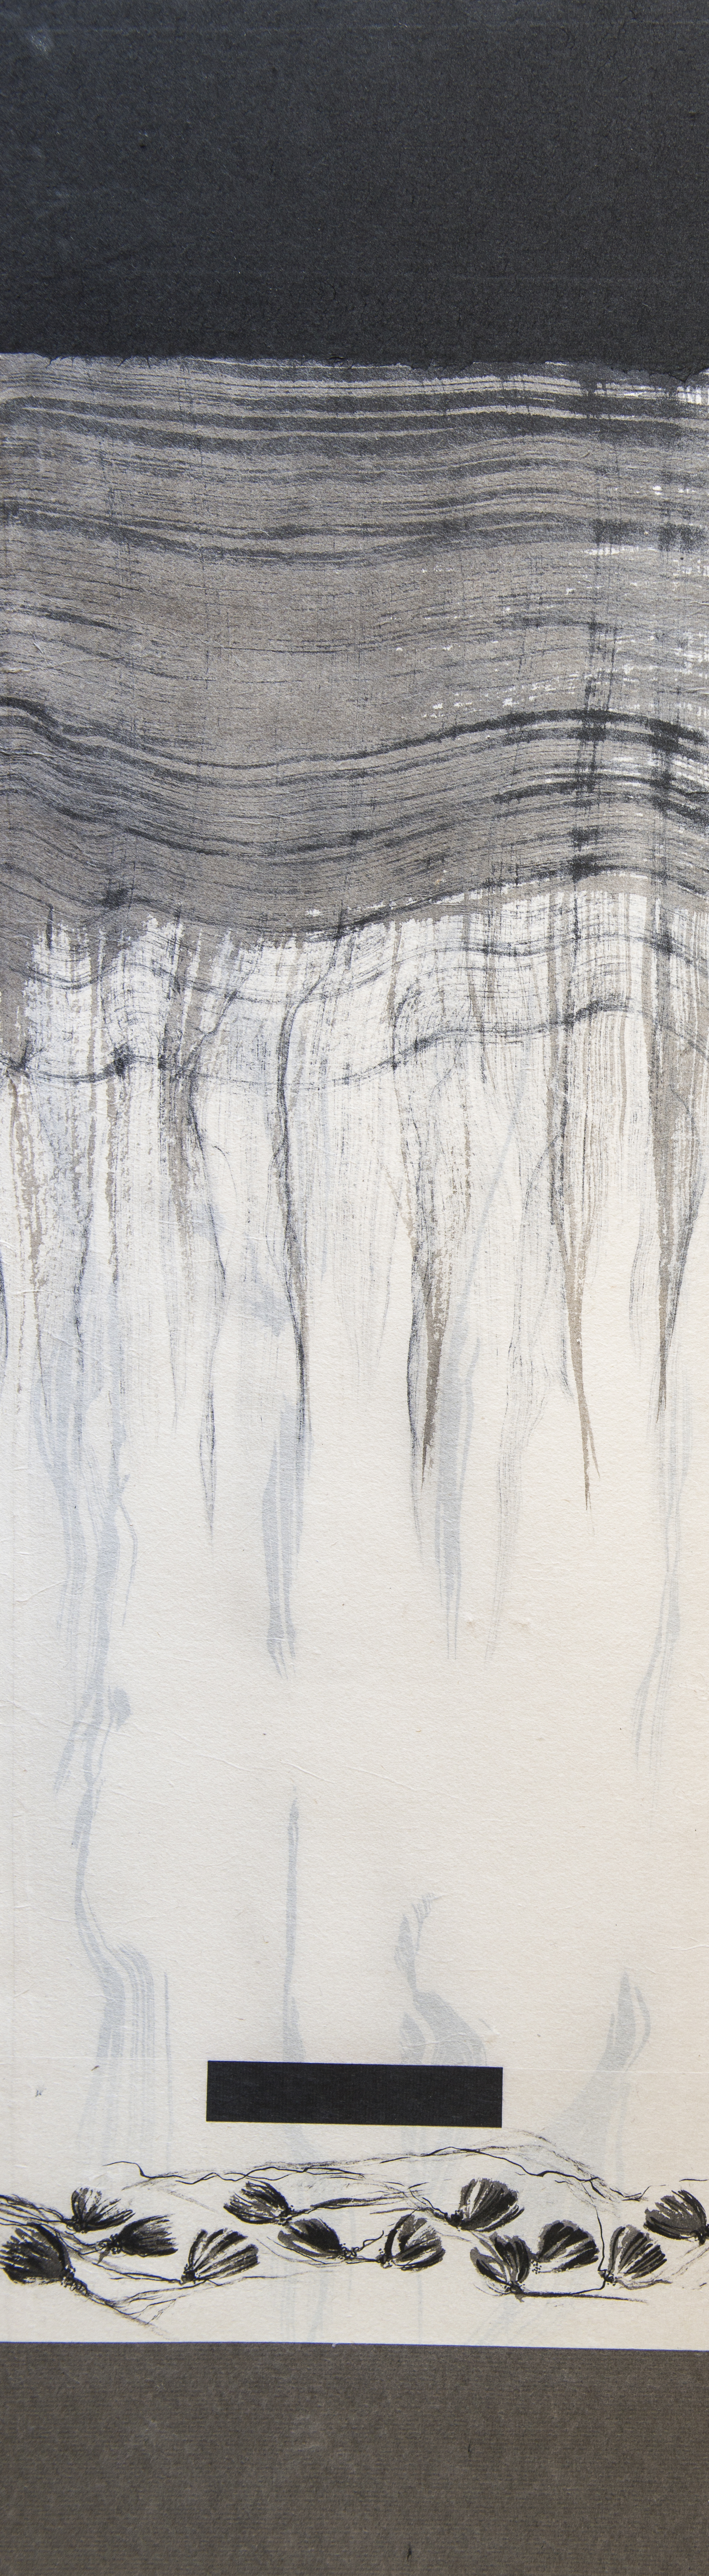 """#15-05 ink on paper 42""""x12"""" 2015 SOLD"""